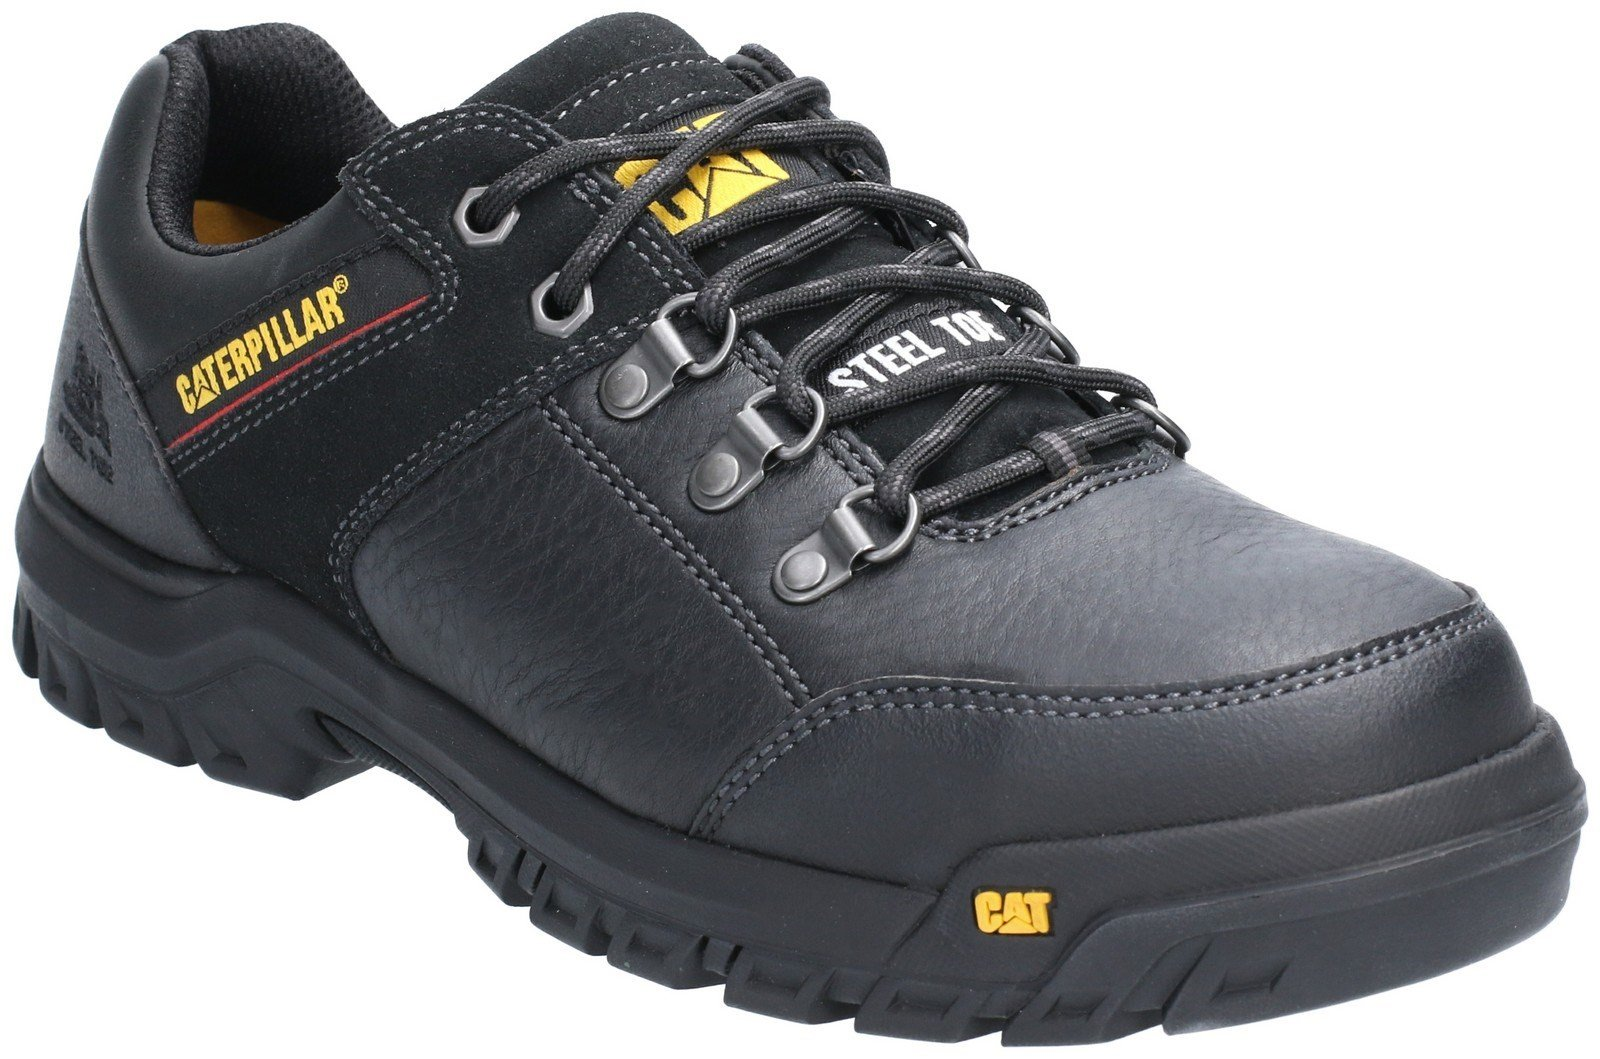 Caterpillar Men's Extension Lace Up Safety Boot Black 29658 - Black 6